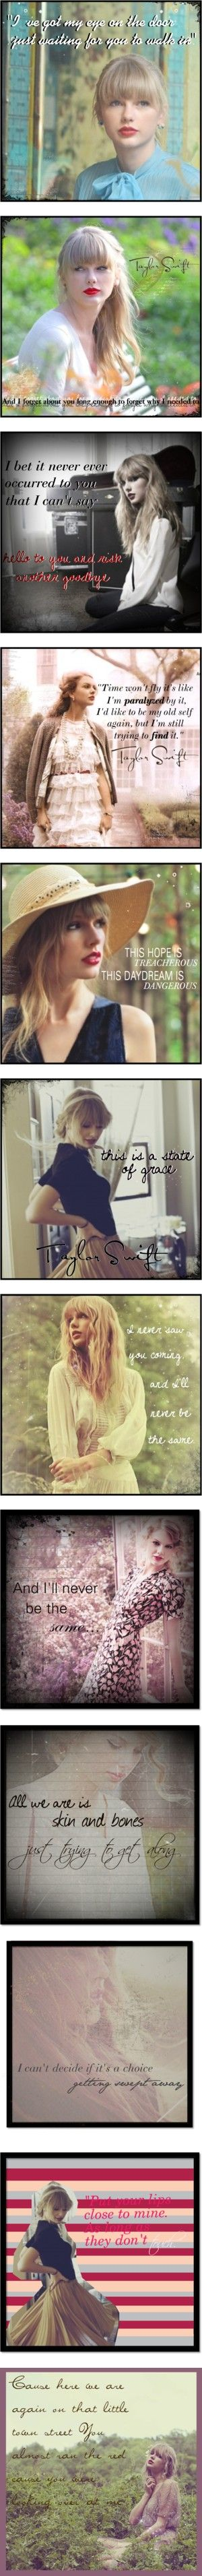 """Taylor Swift Lyrics"" by ditzy22 ❤ liked on Polyvore"